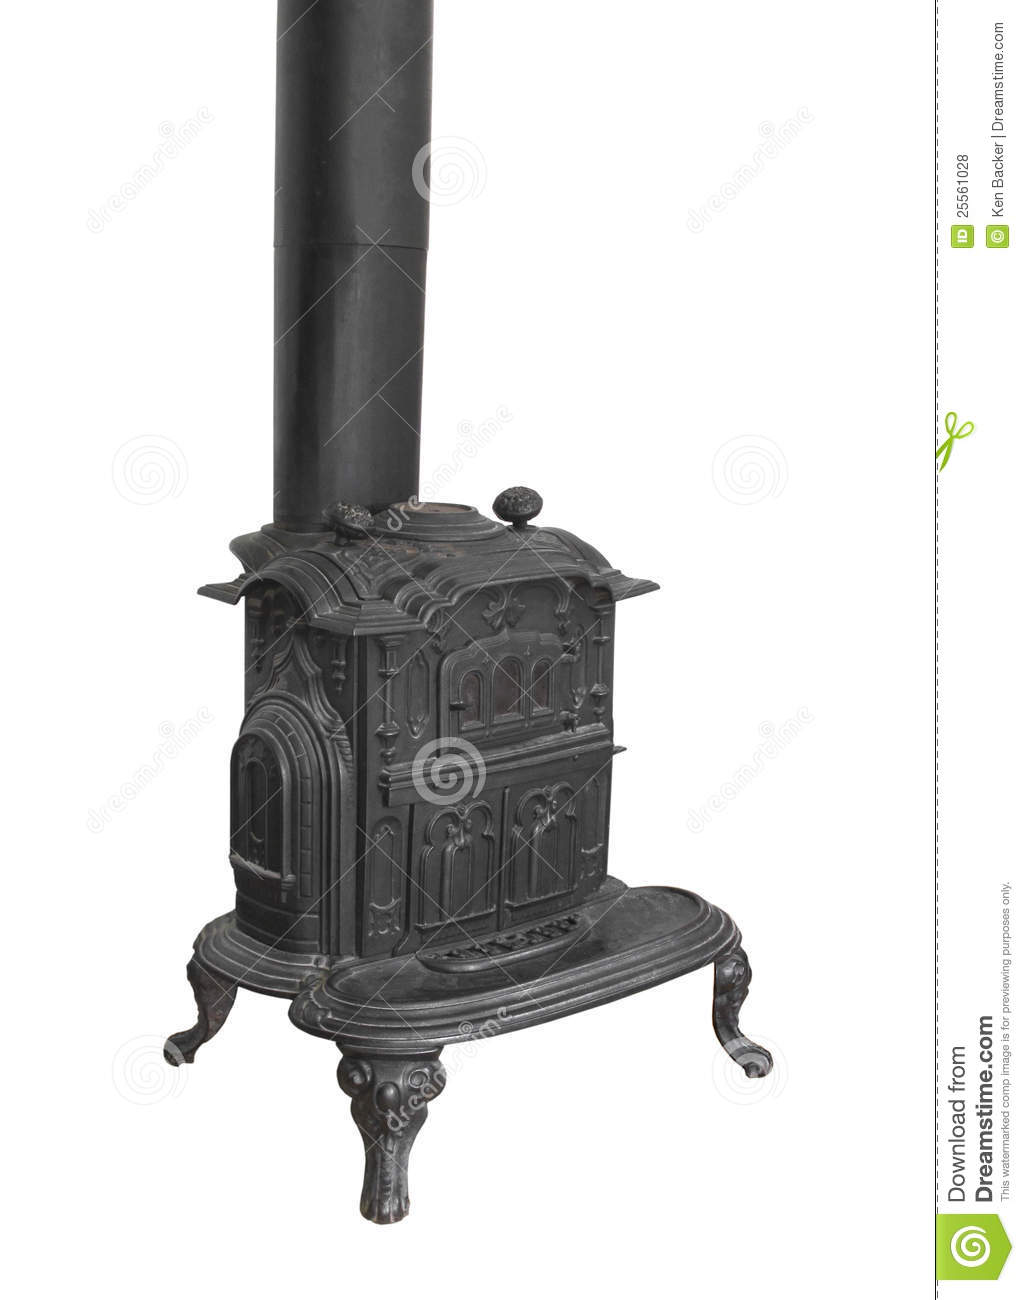 Old Wood Burning Heater Stove Isolated. Royalty Free Stock Photos - Old Wood Burning Stove WB Designs